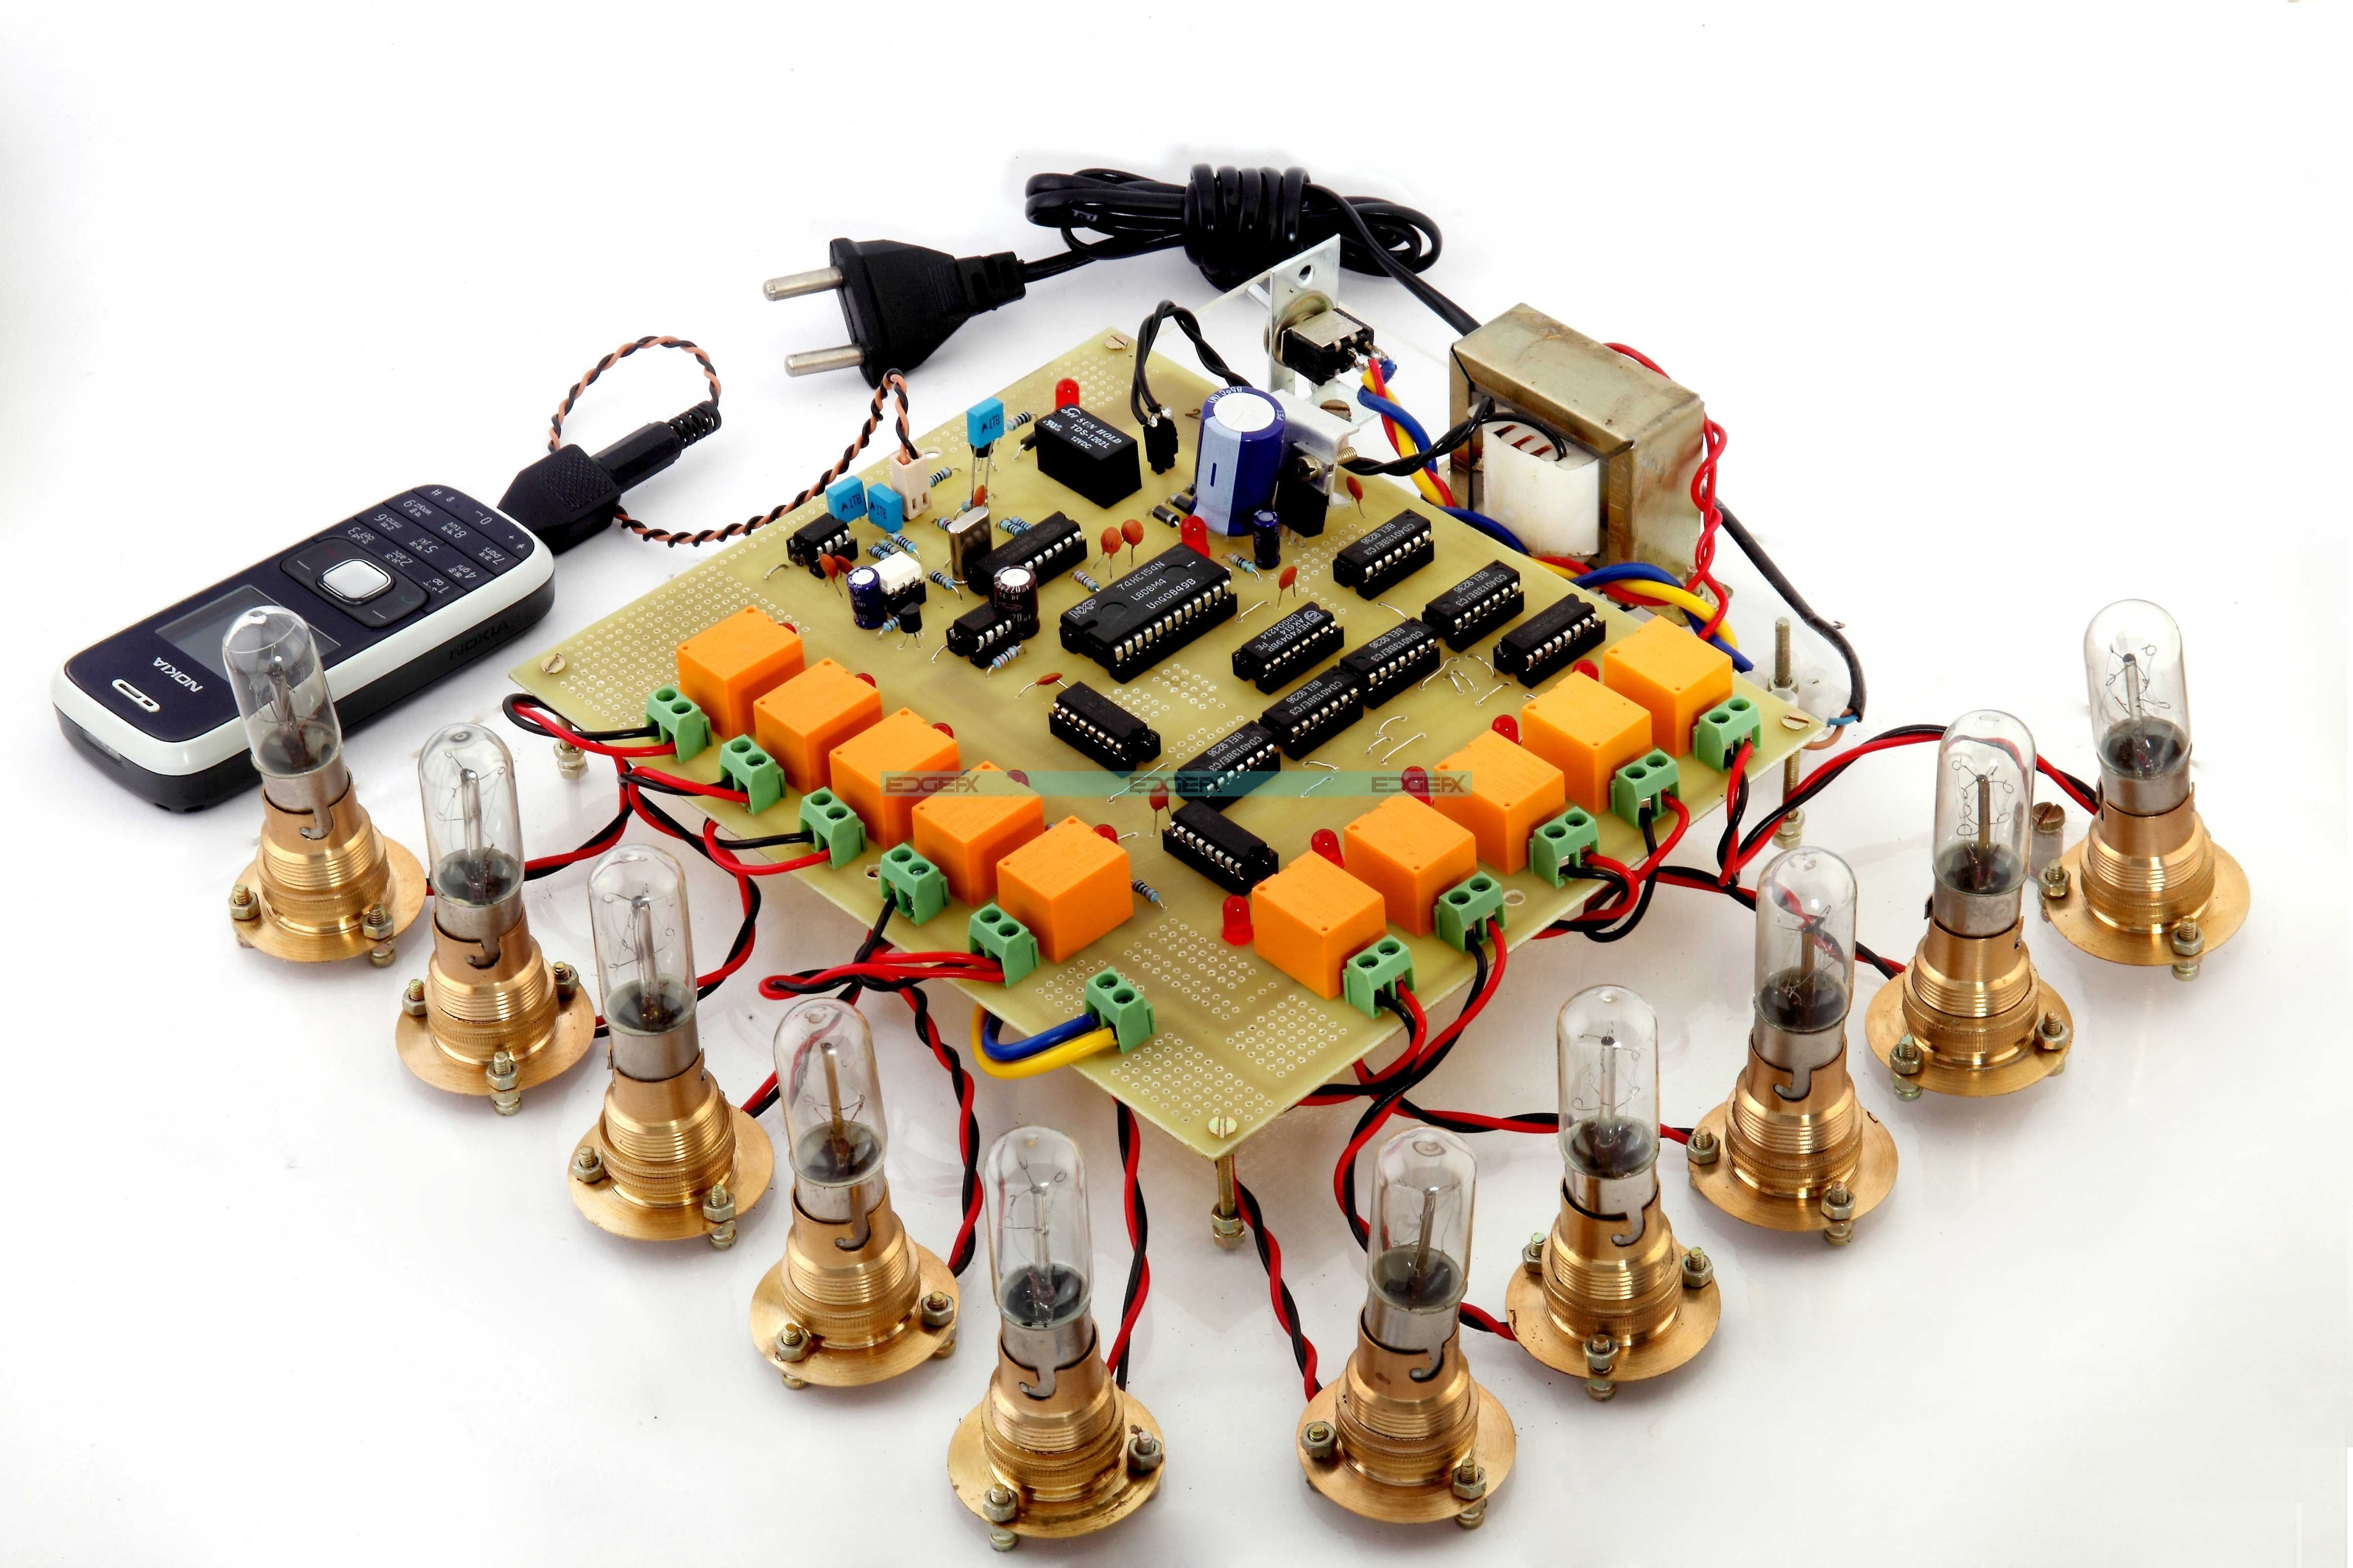 Rf based home automation system project | Écriture in 2019